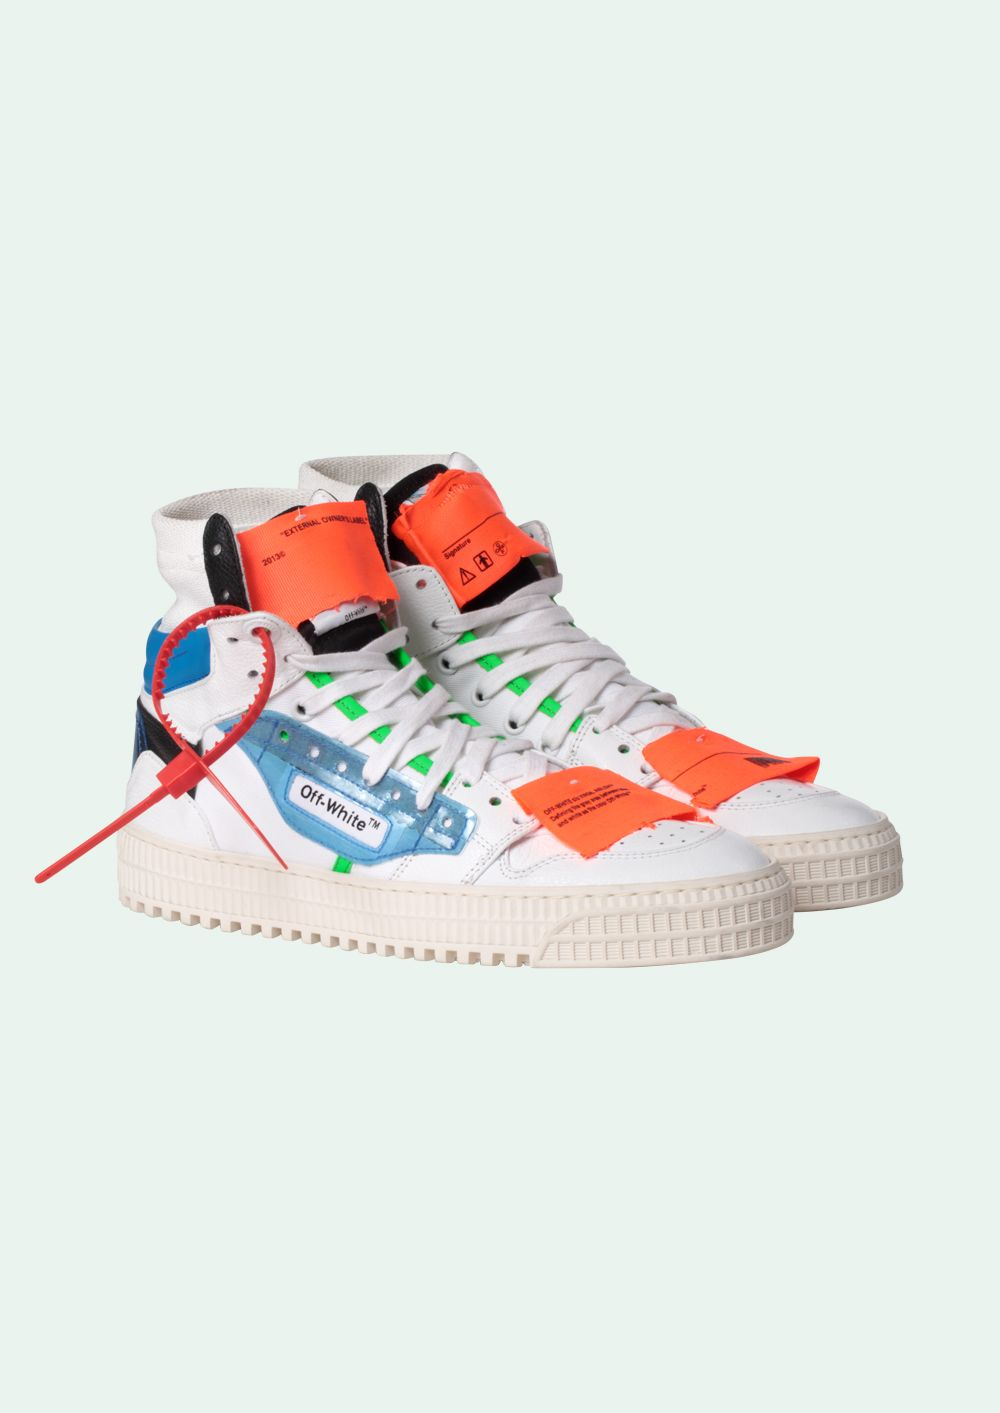 WHITE - Shoes - OffWhite | Hype shoes